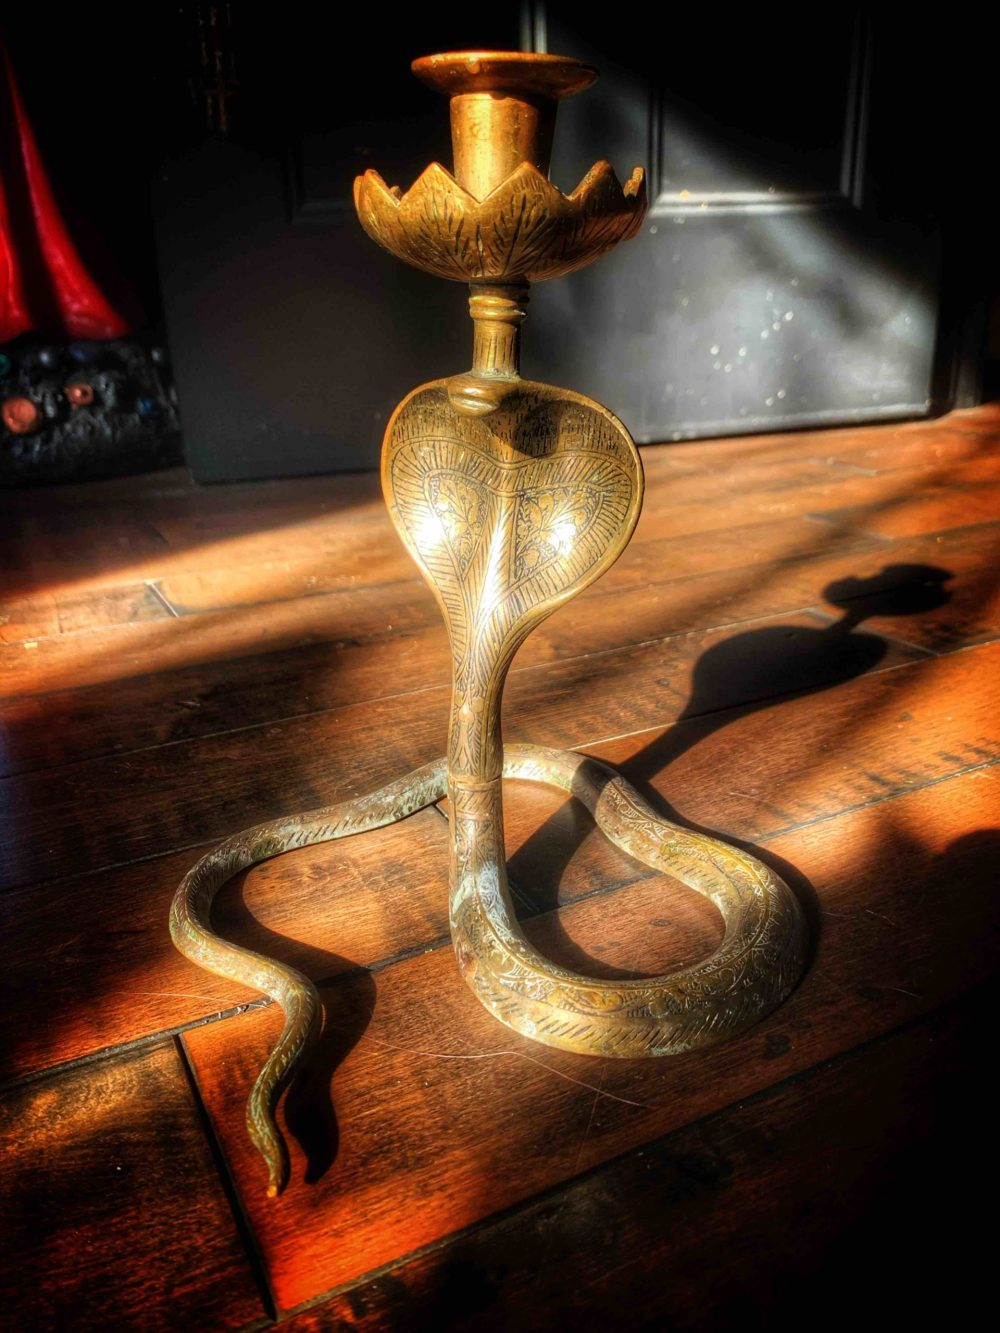 The Brass Snake Candlestick Vintage